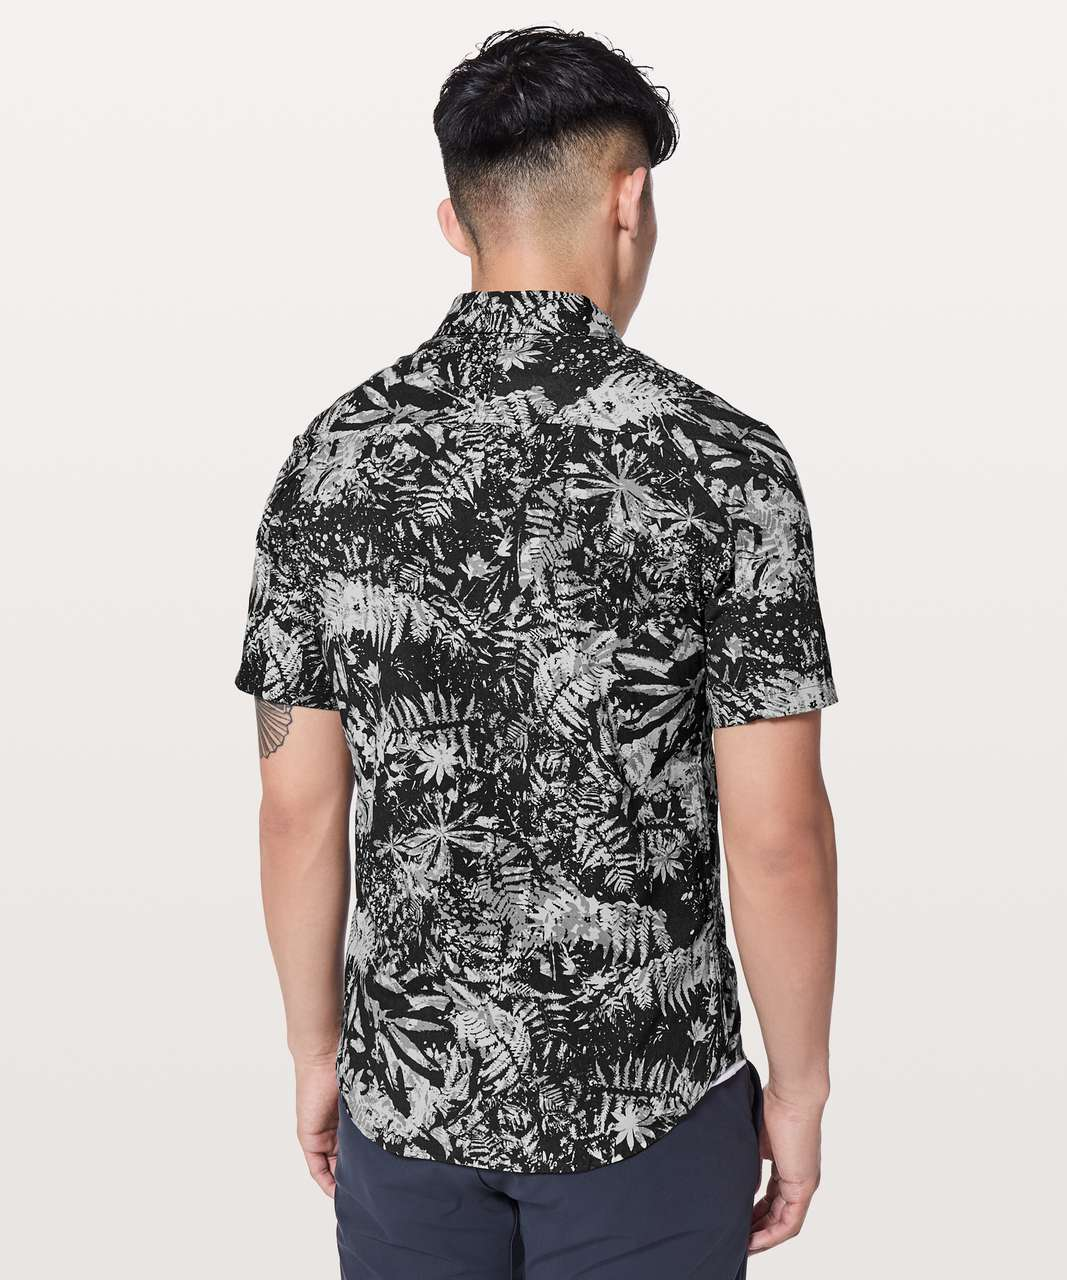 Lululemon All Town Short Sleeve Buttondown - Canopy Ice Grey Black